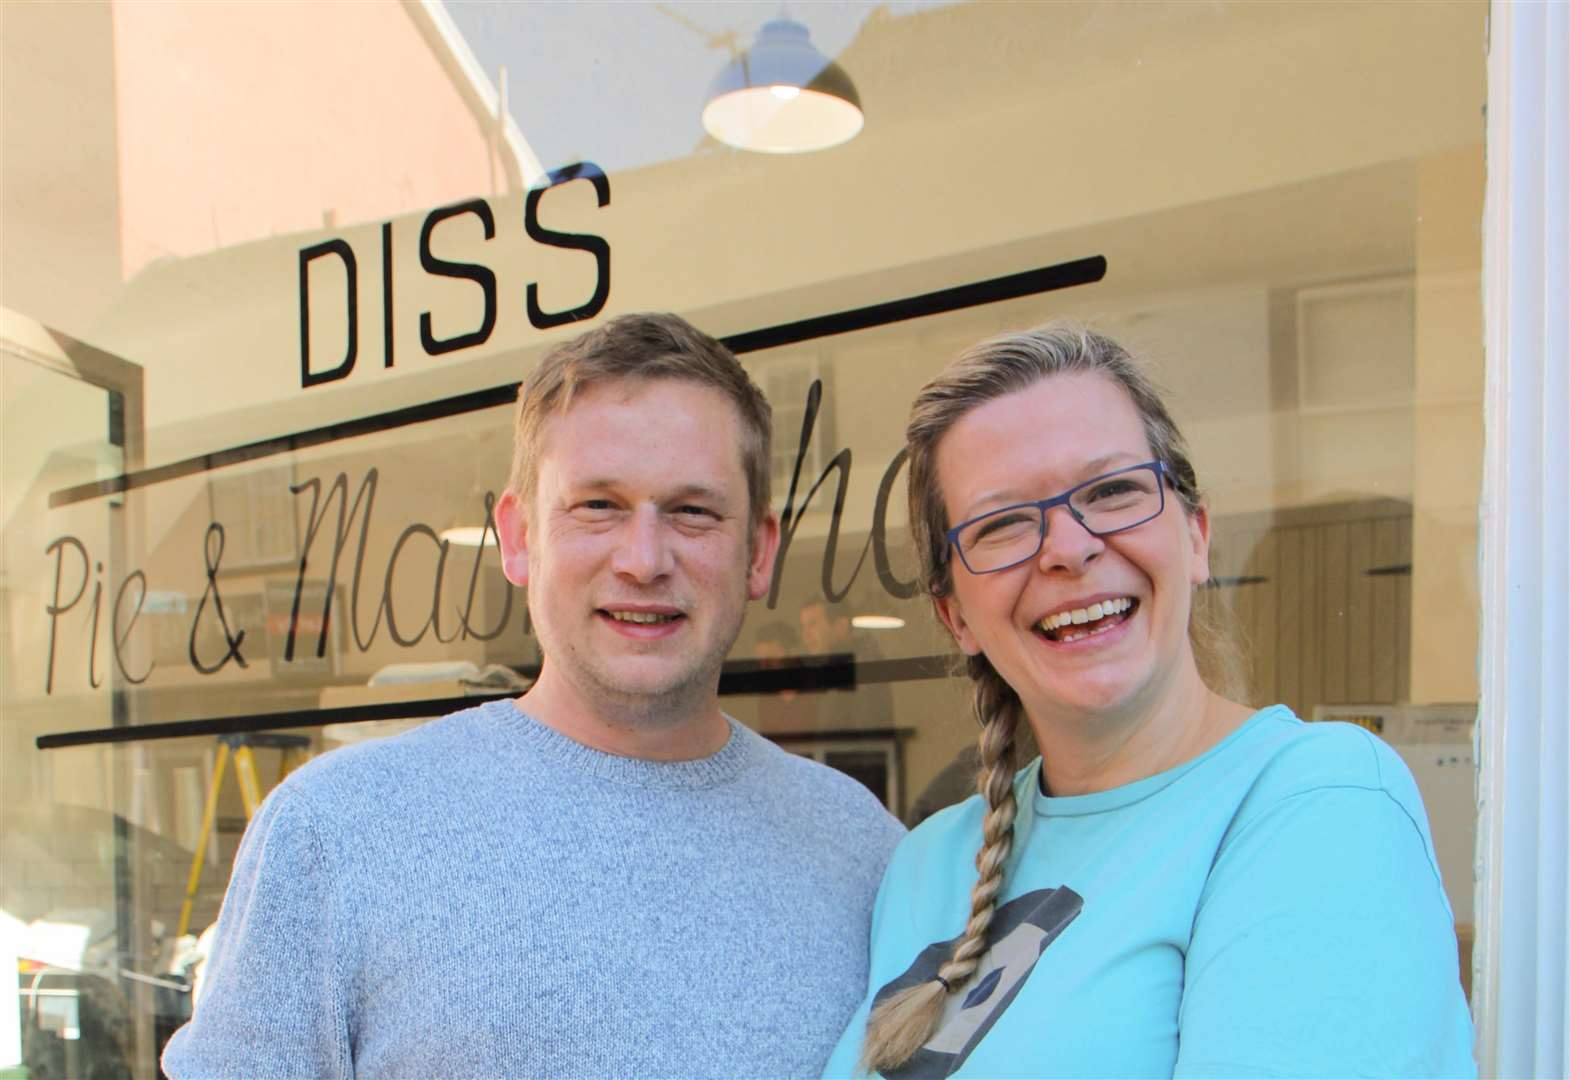 Diss pie and mash shop opens tomorrow